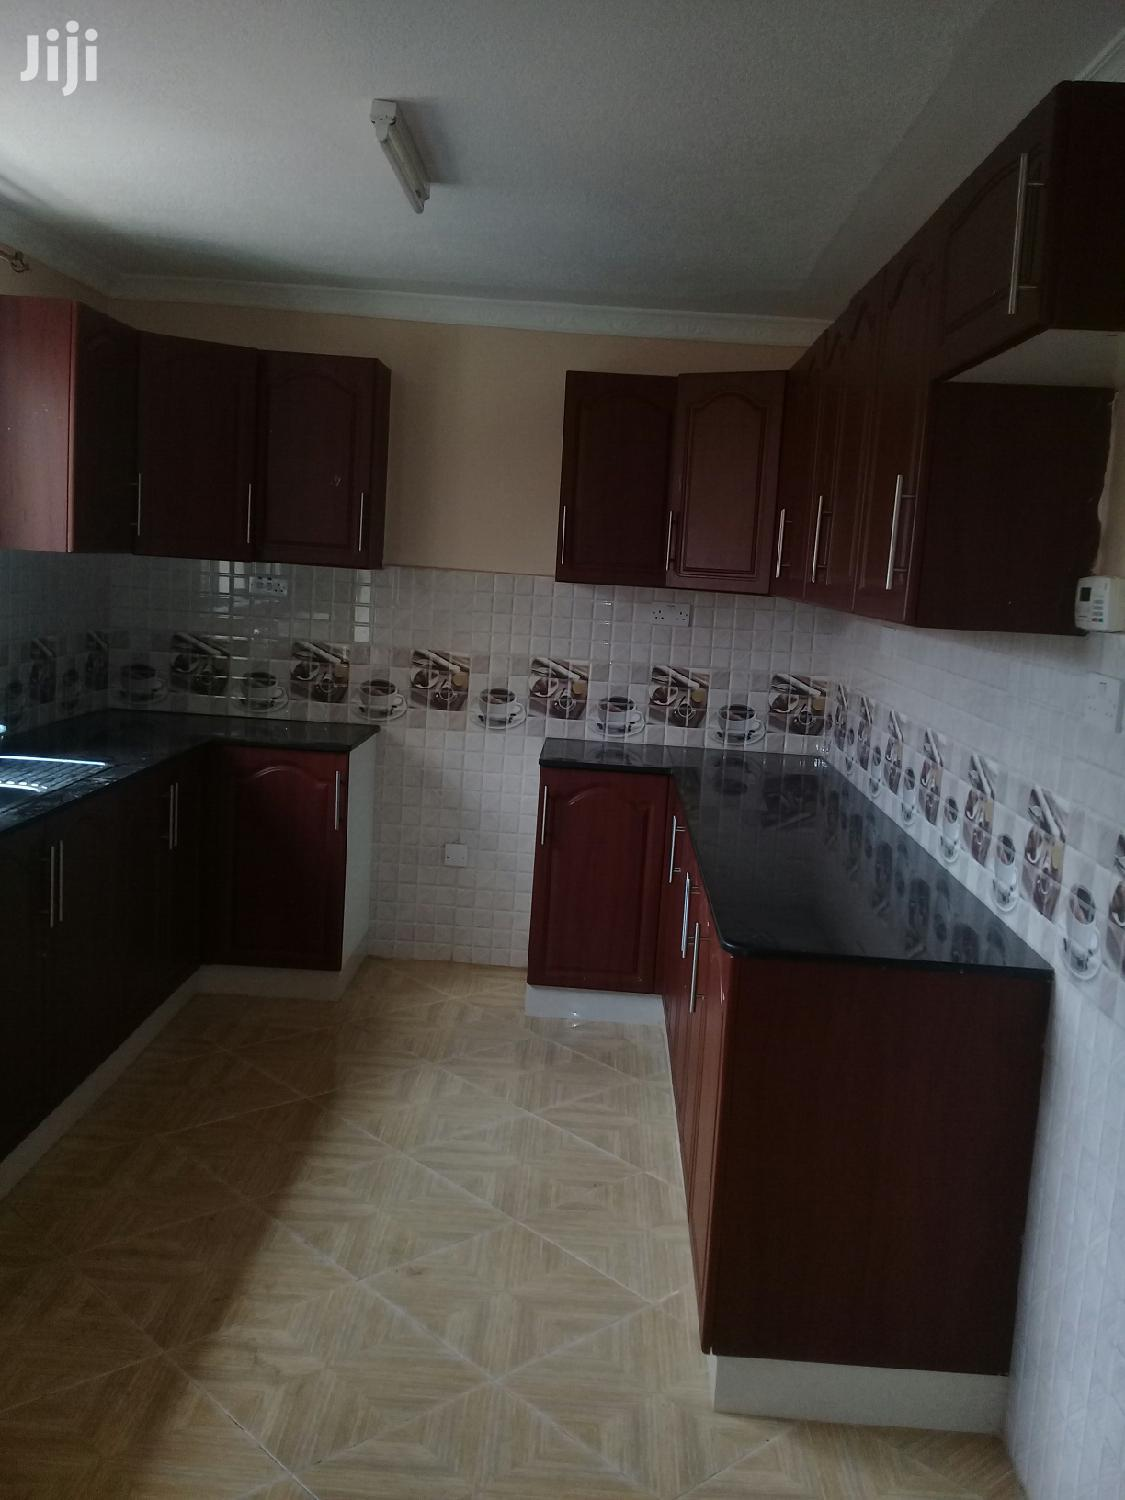 One Bedroom To Let | Houses & Apartments For Rent for sale in Kileleshwa, Nairobi, Kenya